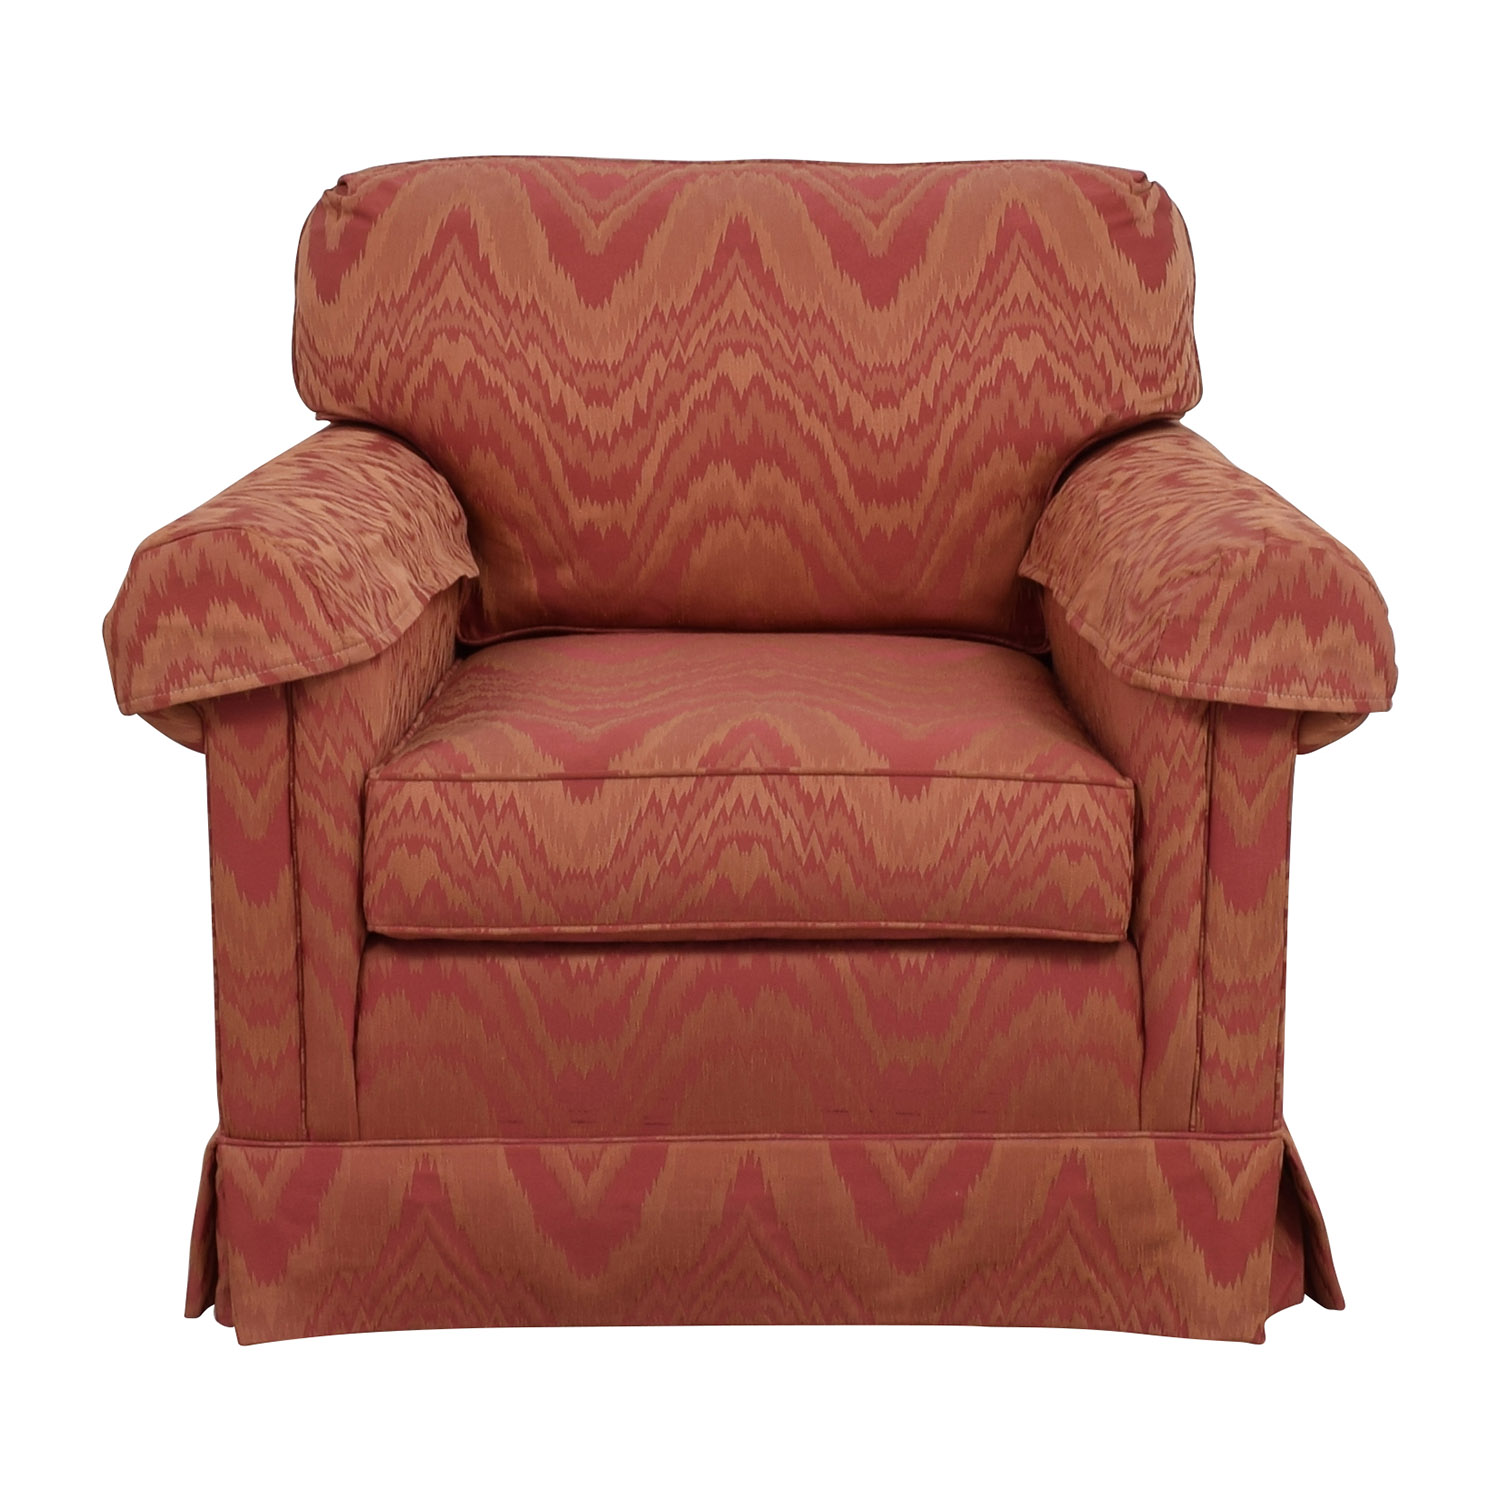 shop Sherrill Orange and Red Patterned Accent Chair Sherrill